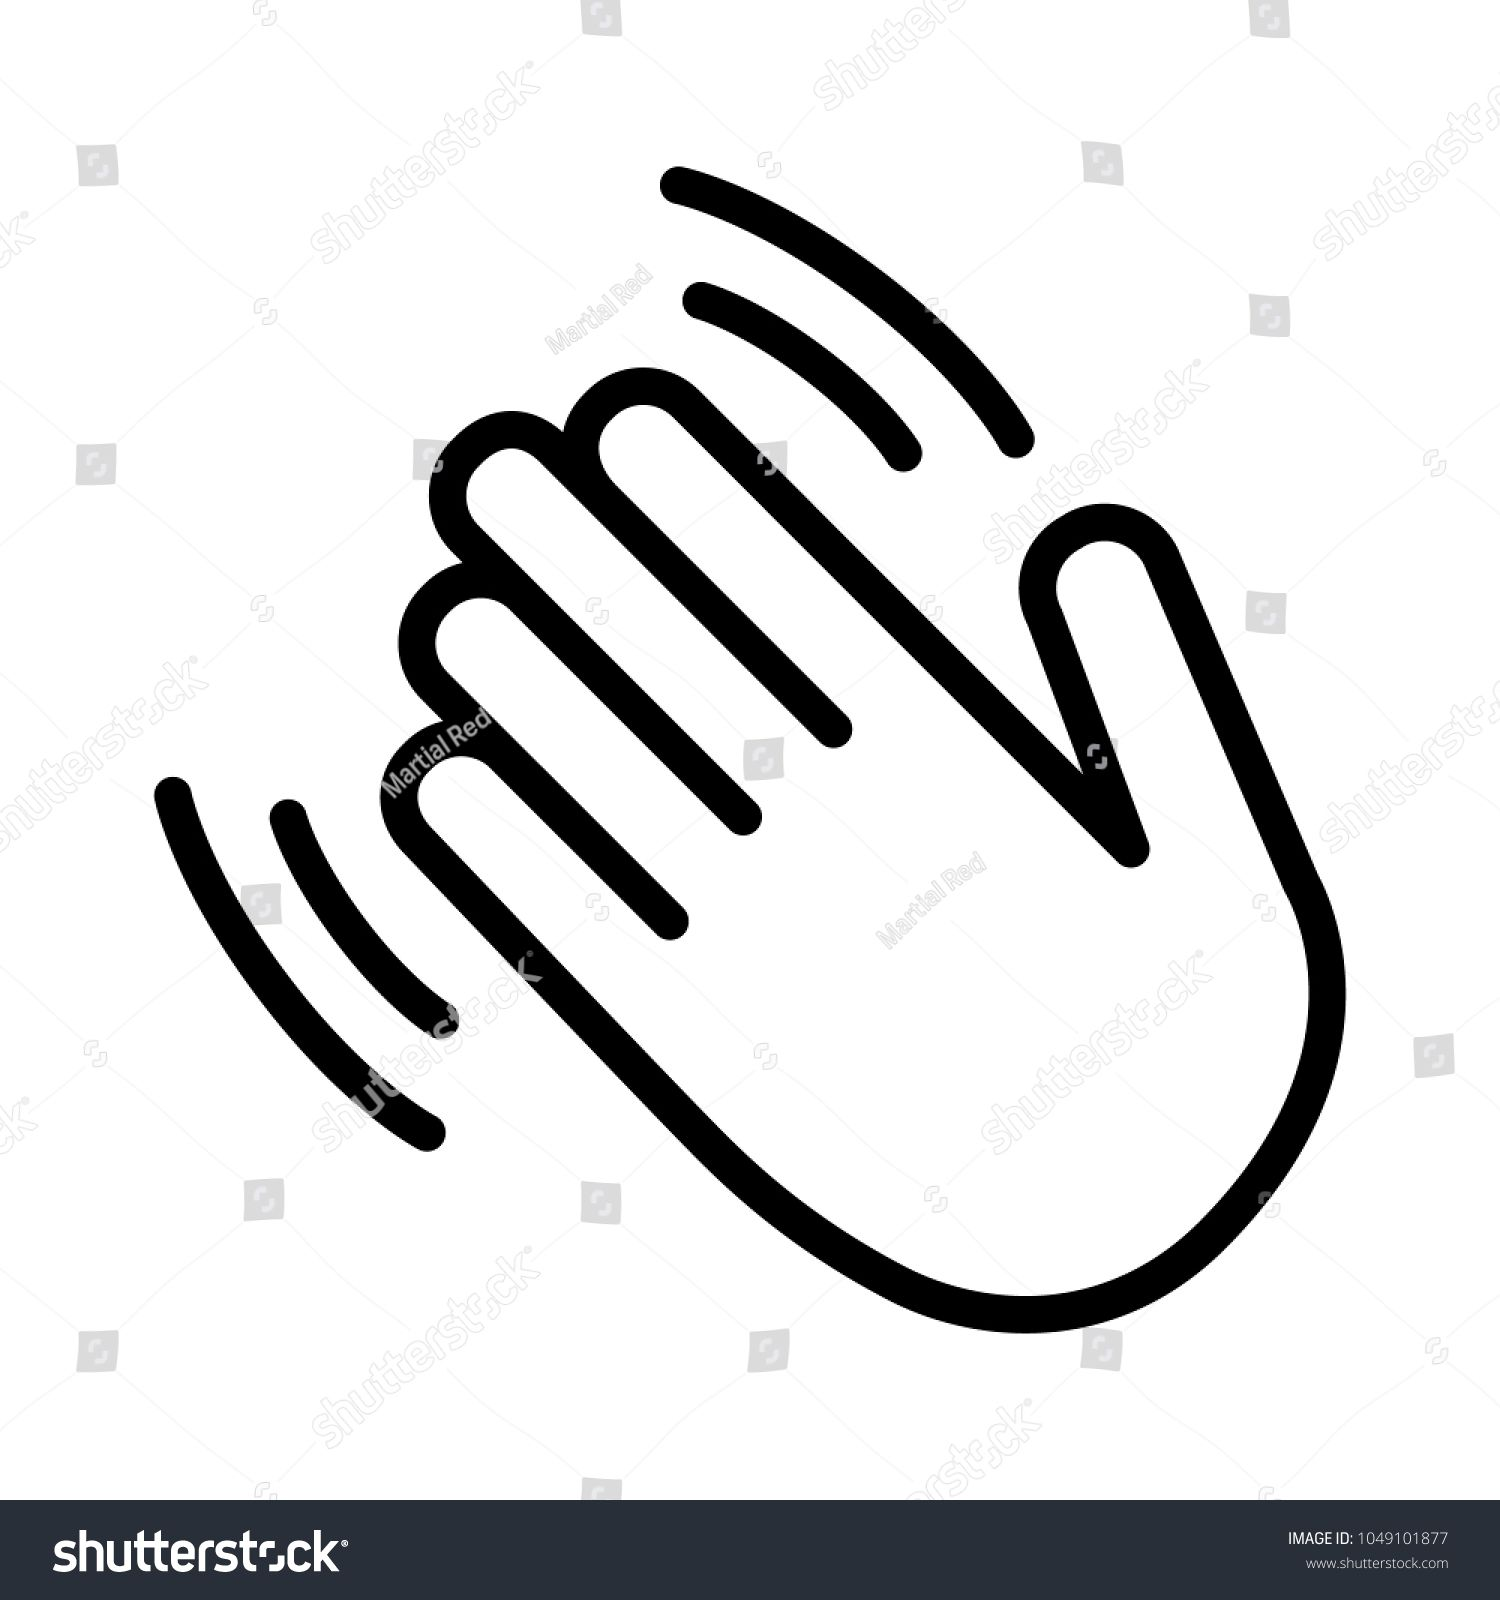 Hand wave \u002F waving hi or hello gesture line art